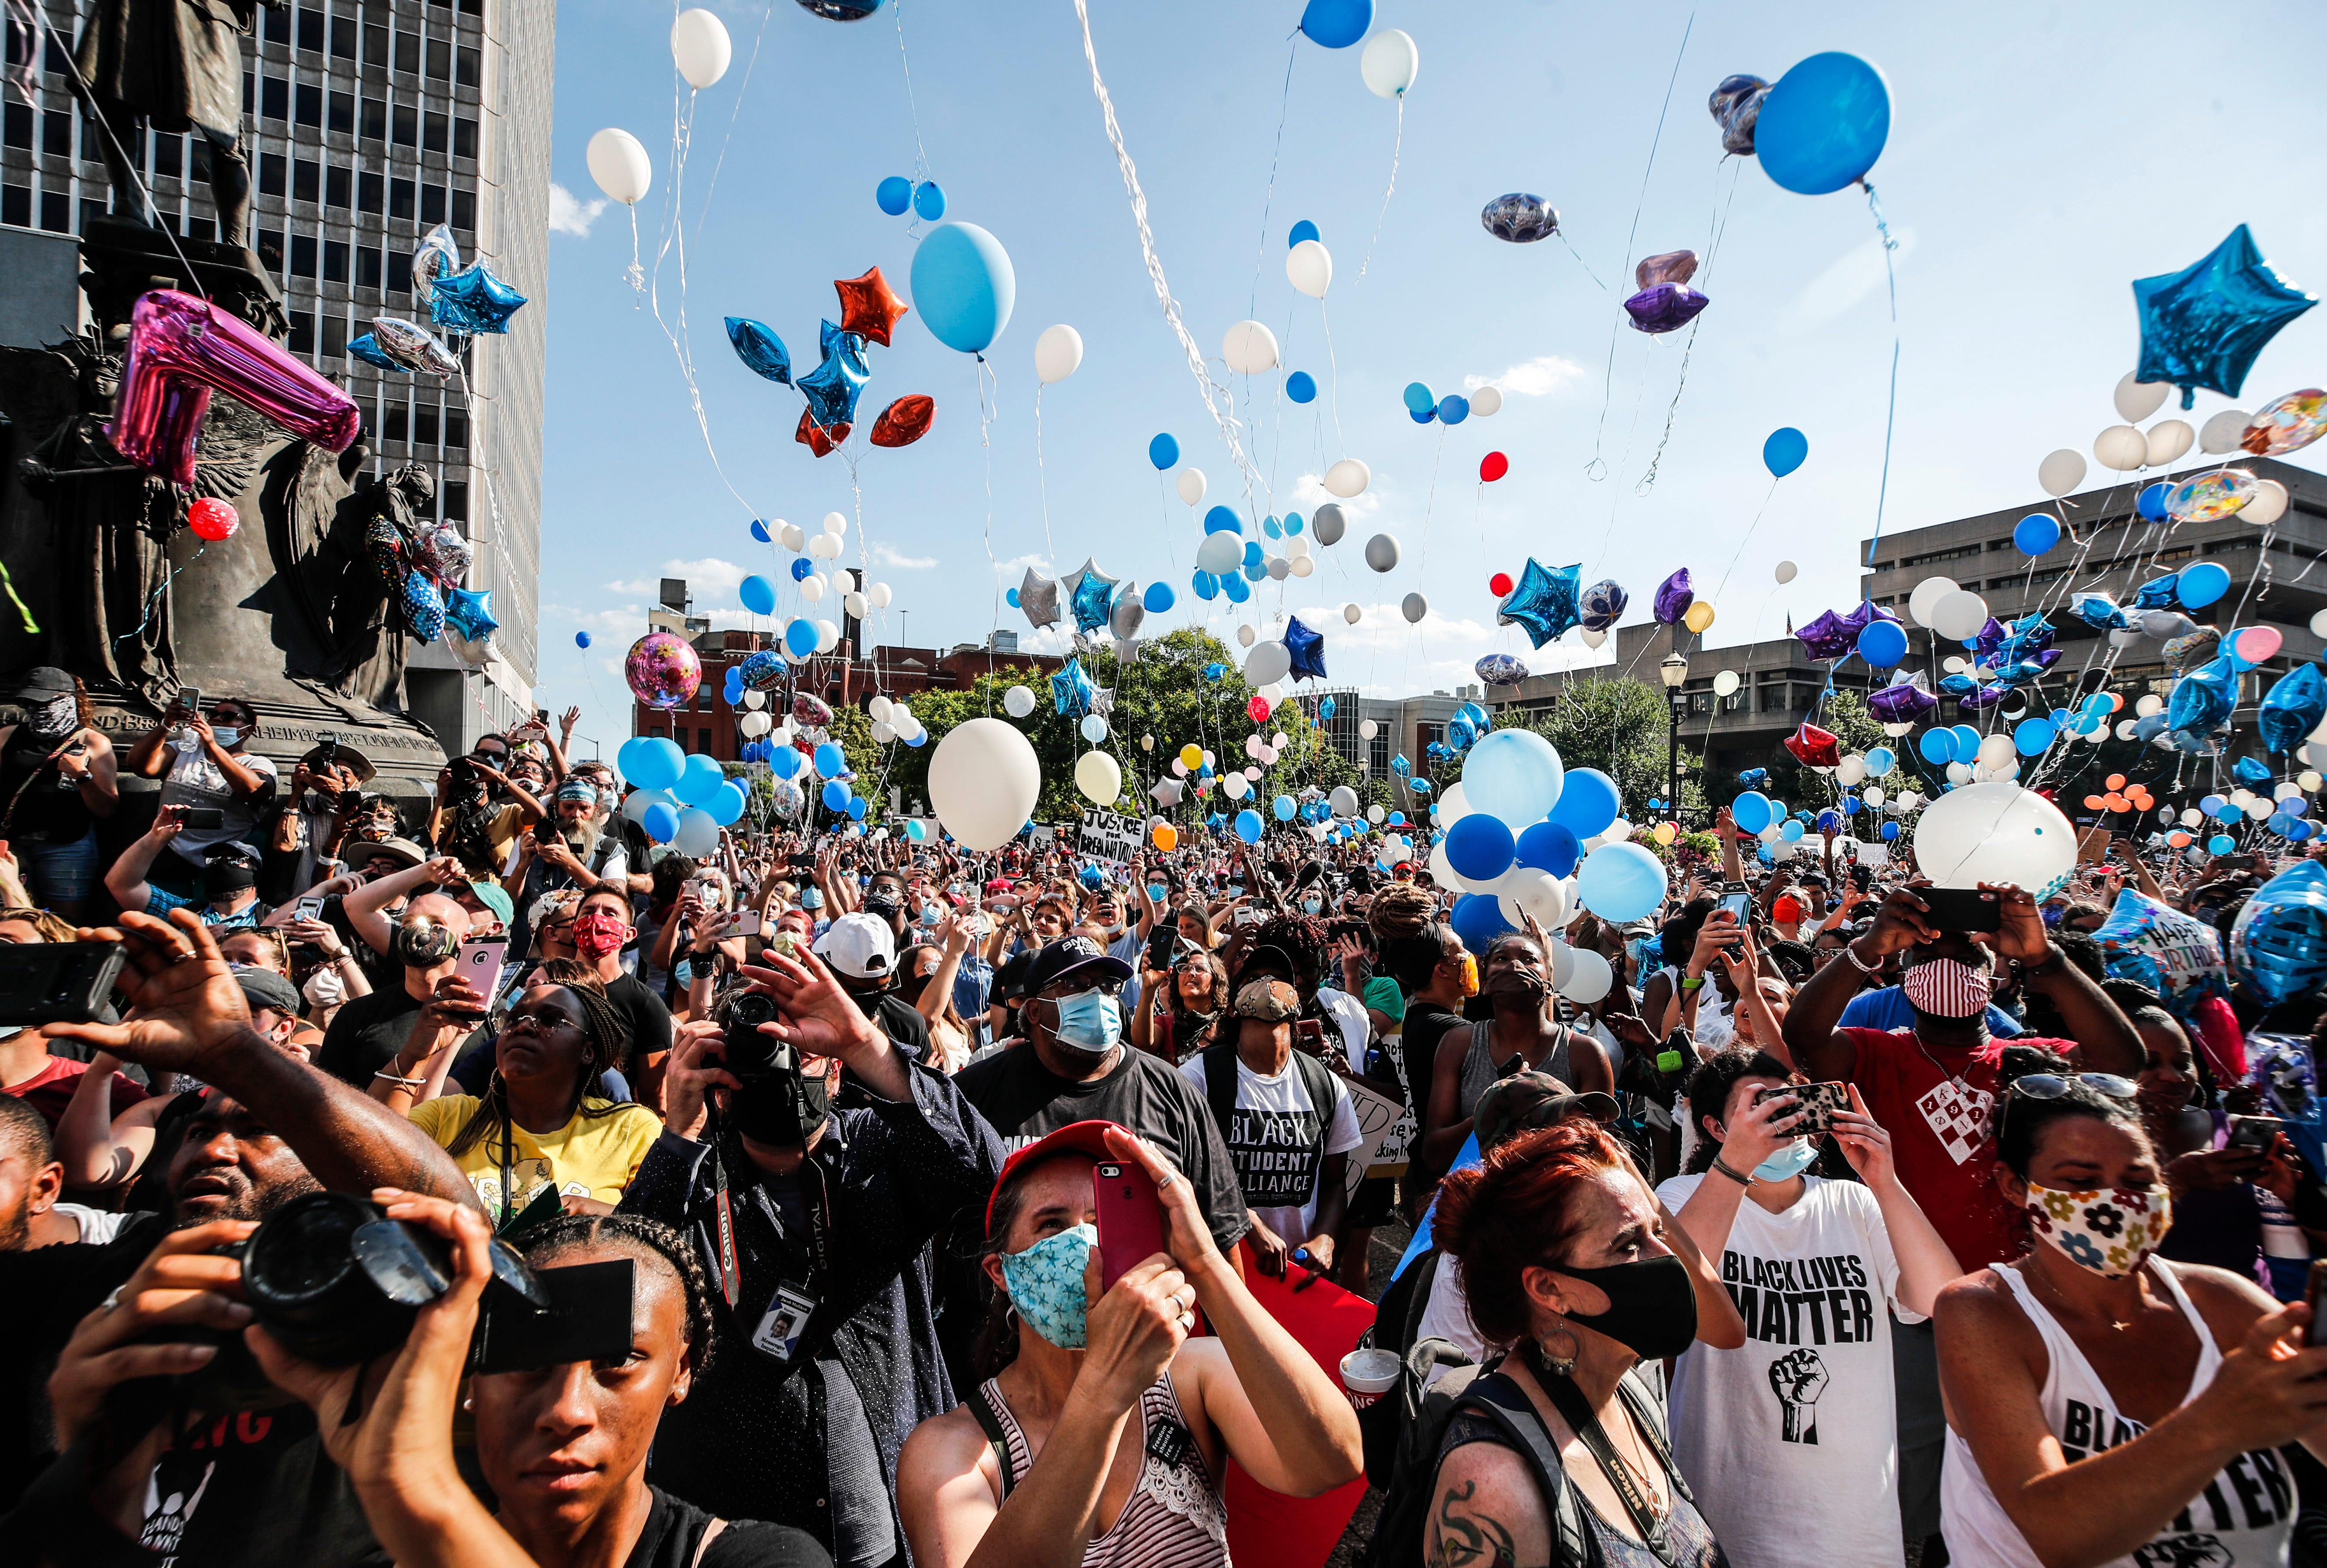 Thousands of balloons were released from a crowded Jefferson Square in remembrance of Breonna Taylor, the 26-year-old EMT killed in her sleep by LMPD during a 'no-knock' raid.